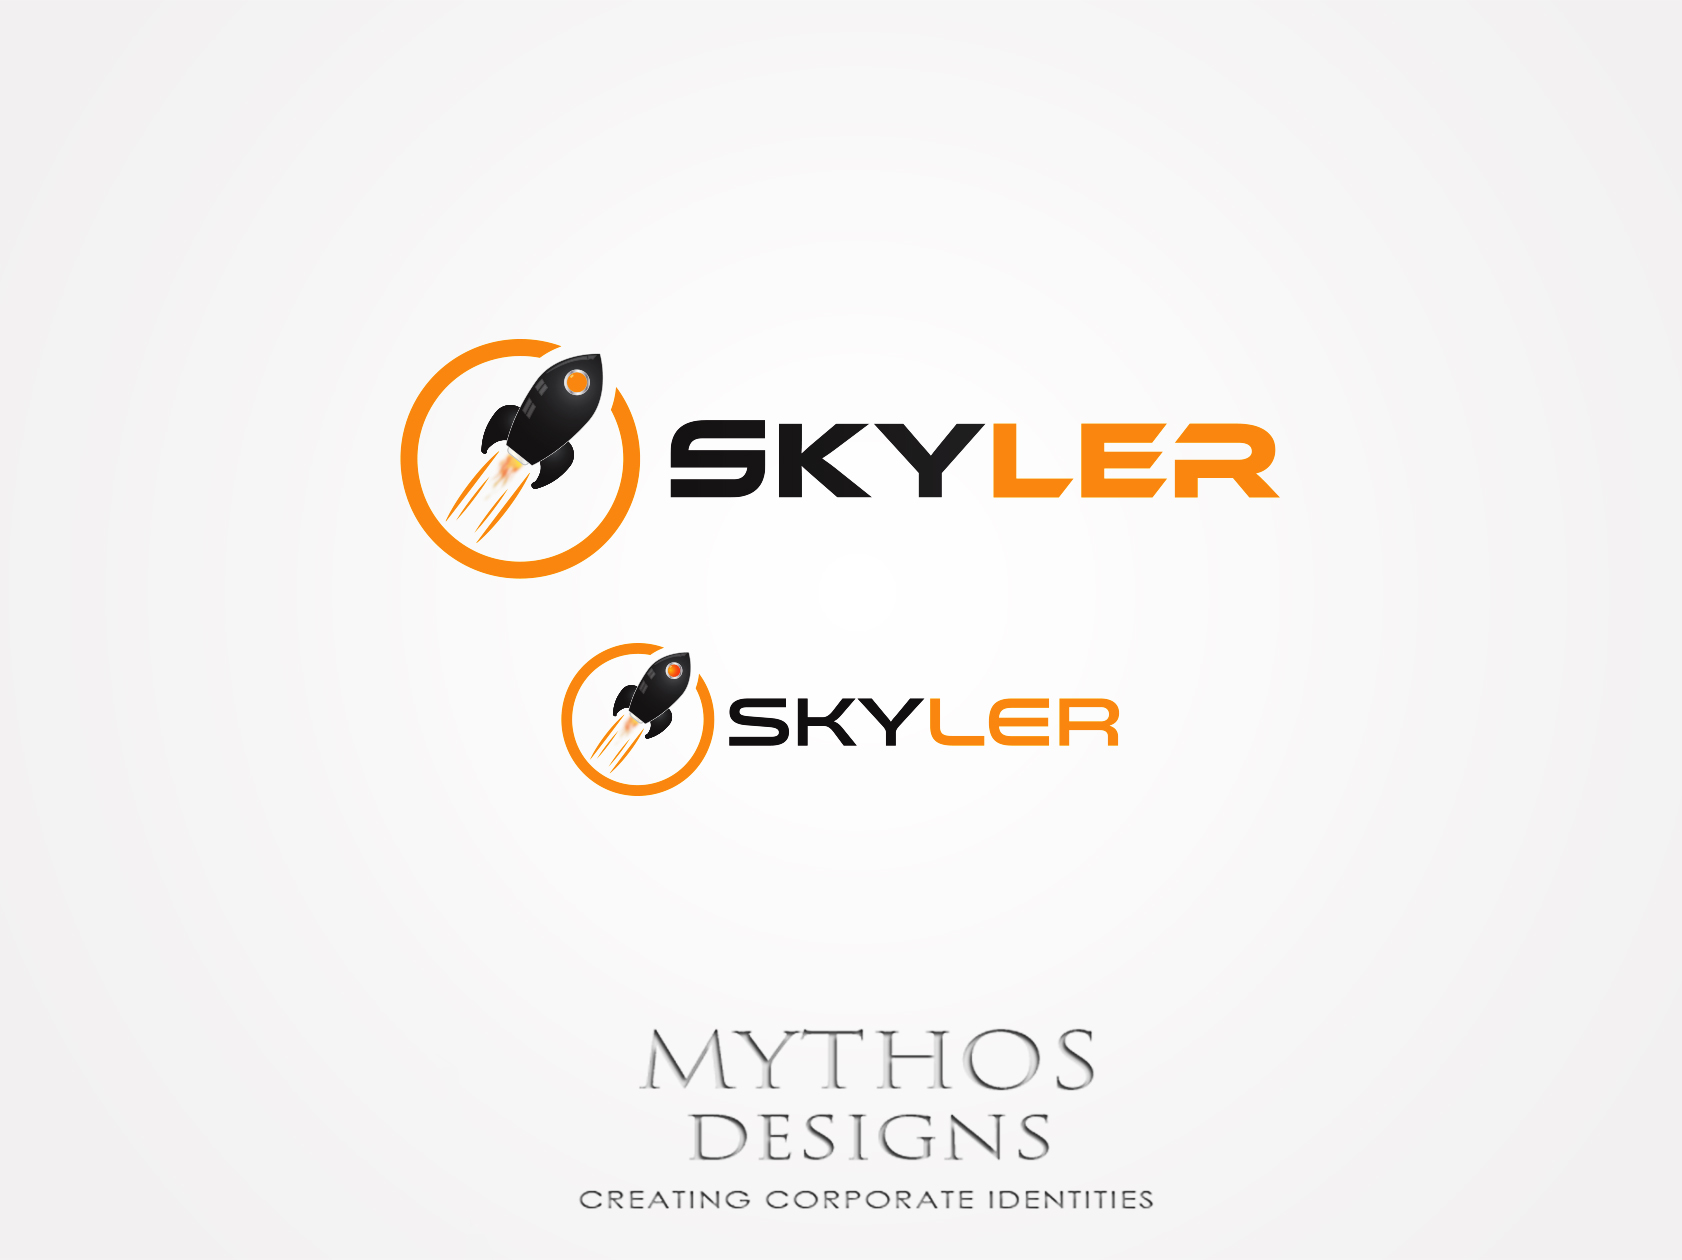 Logo Design by Mythos Designs - Entry No. 145 in the Logo Design Contest Artistic Logo Design for Skyler.Asia.